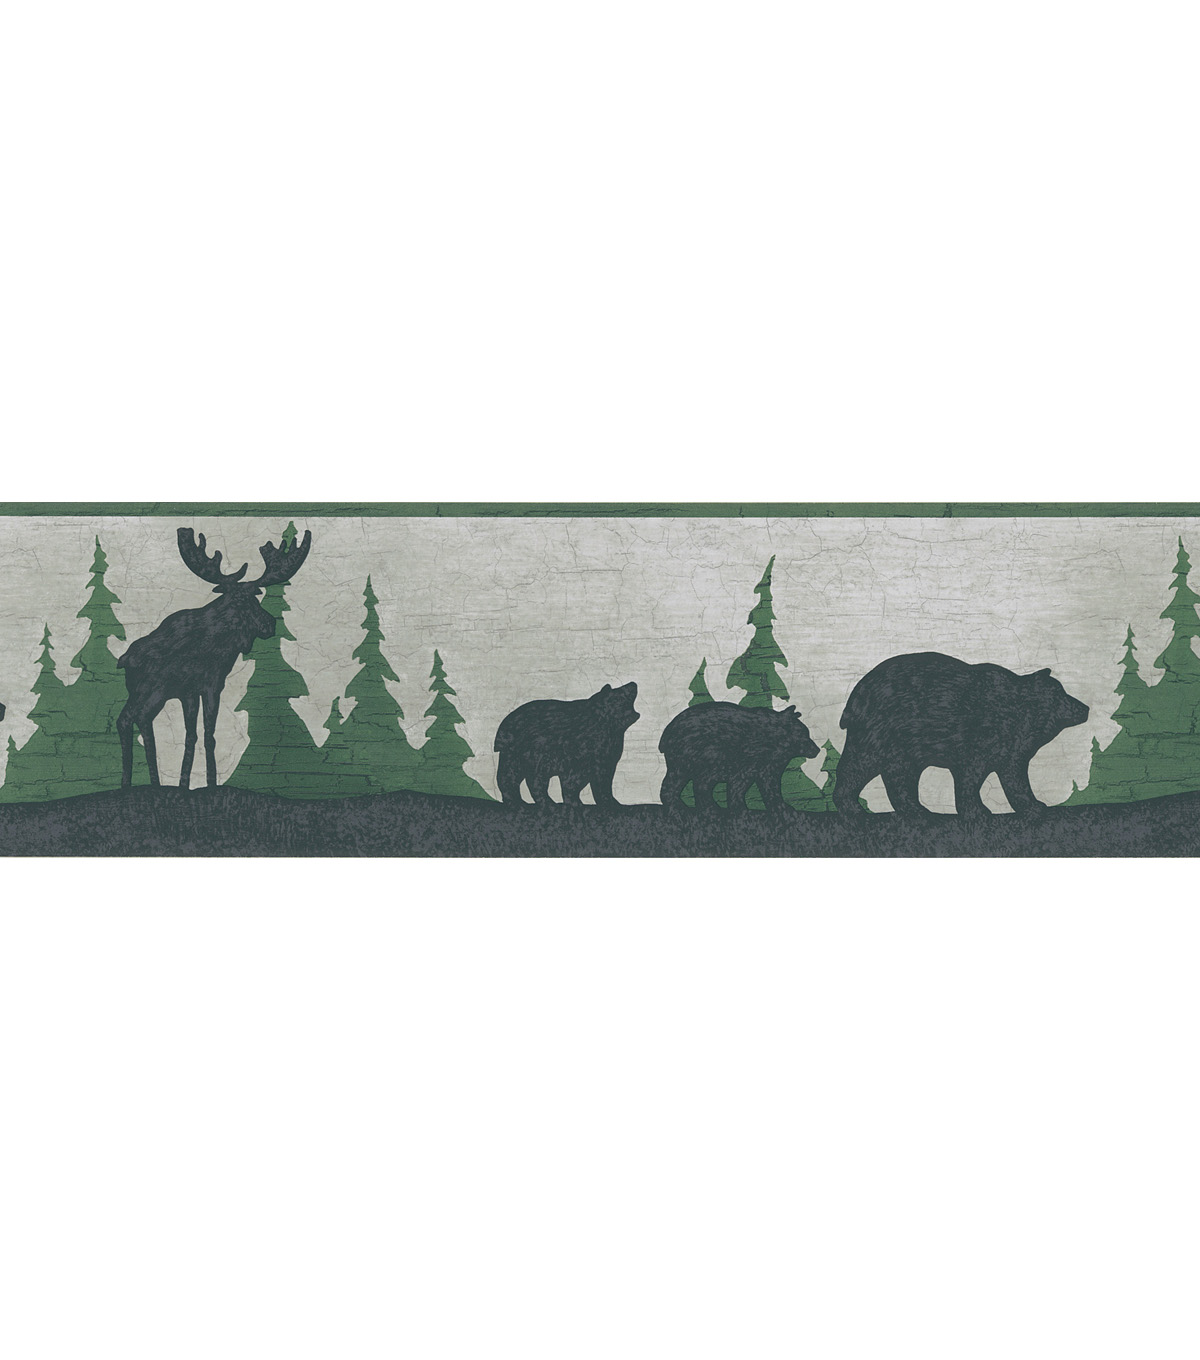 Woods Grey Bear And Moose Silhouette Wallpaper Border Sample hi res 1200x1360